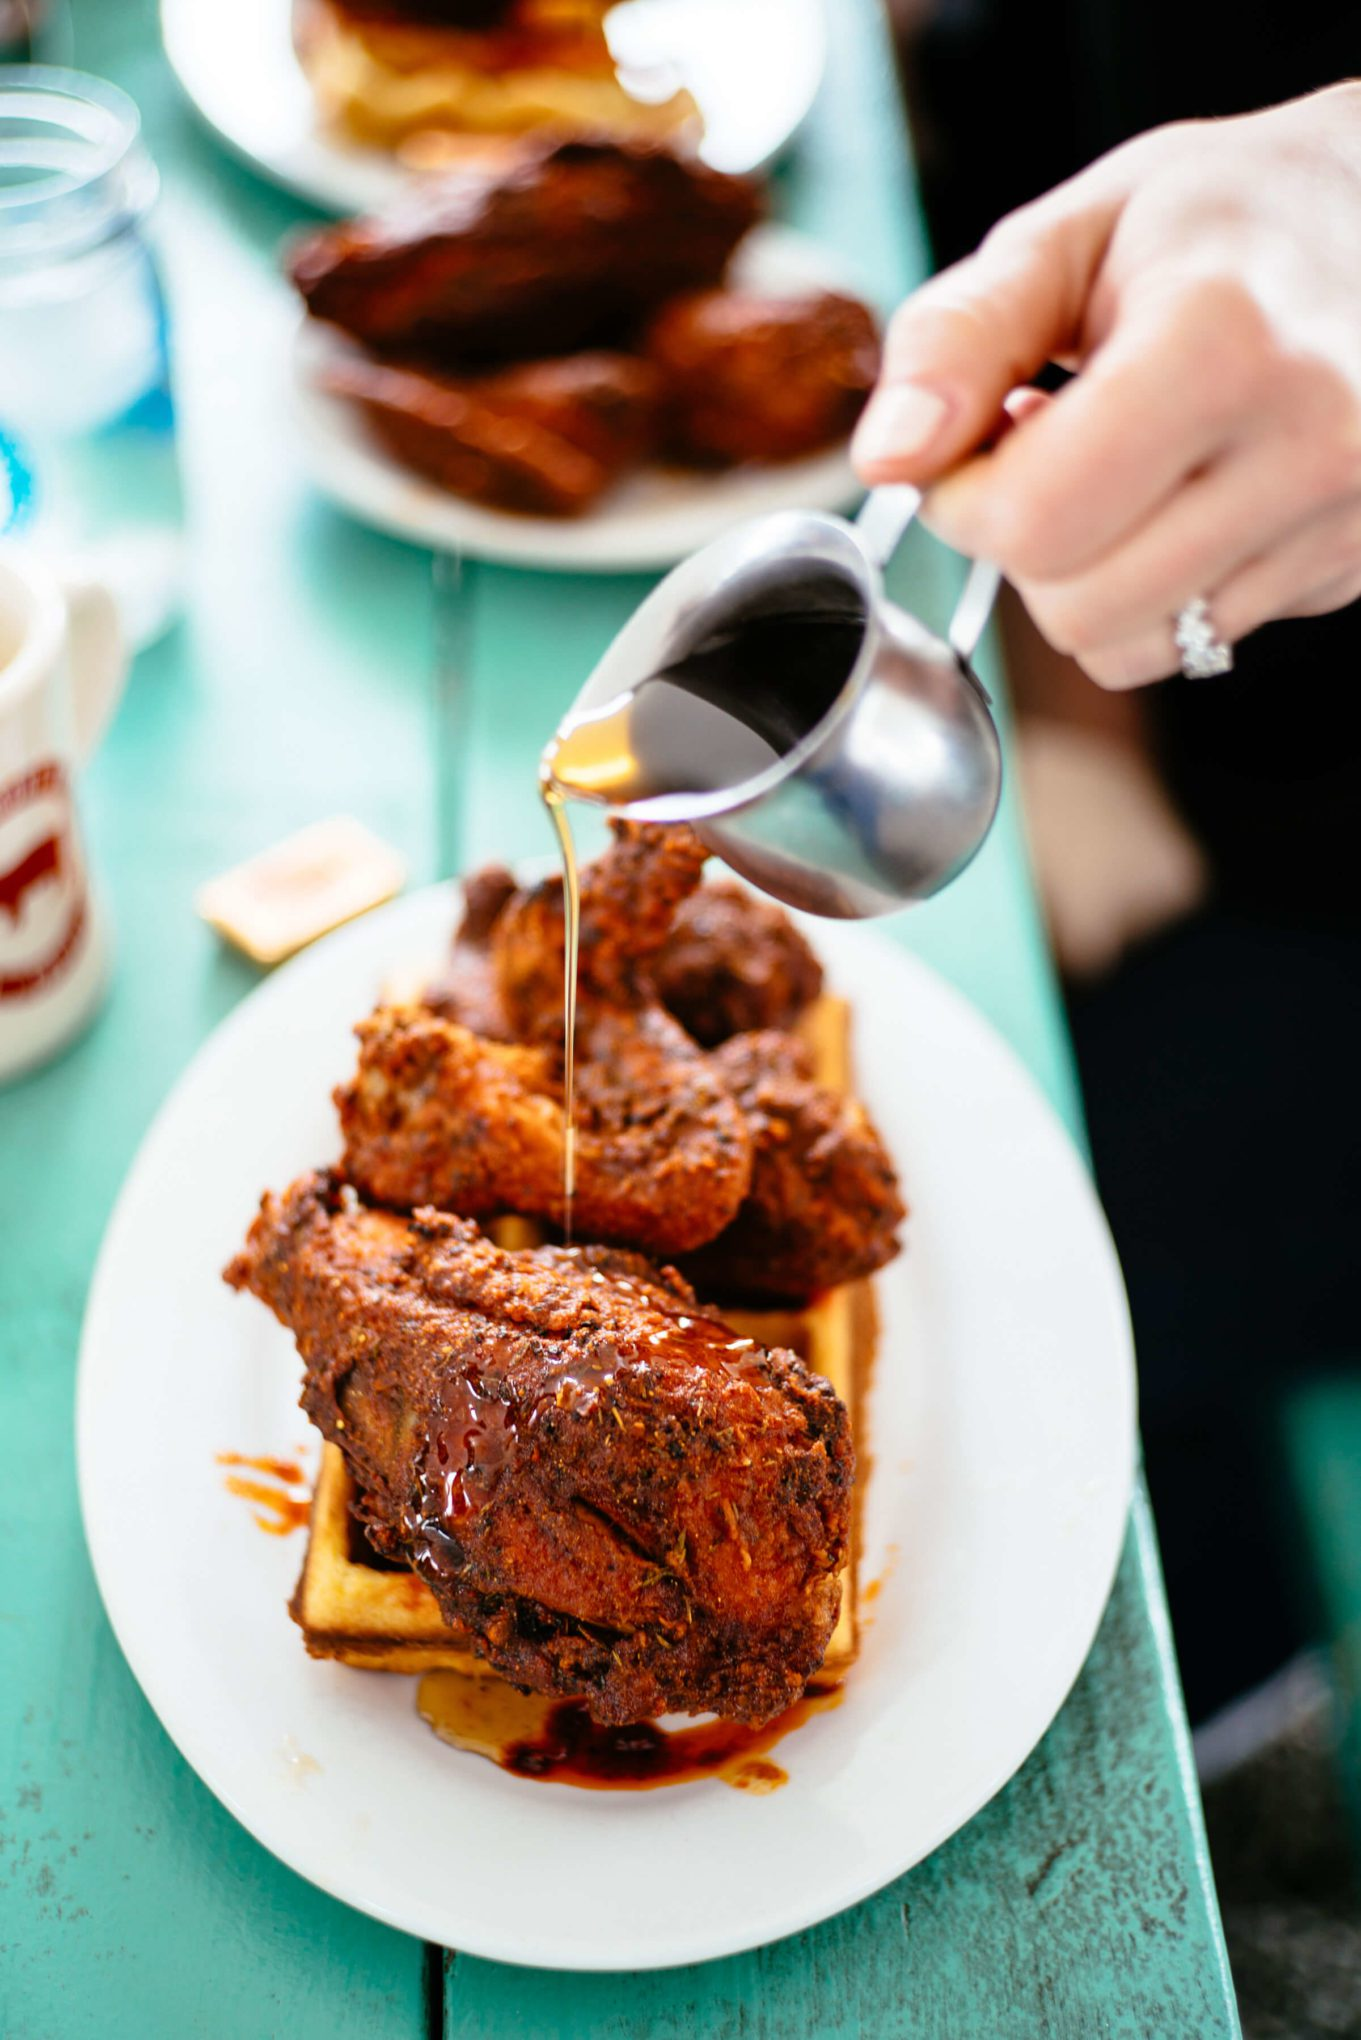 The Fremont Diner Nashville hot chicken is the best with waffles and syrup